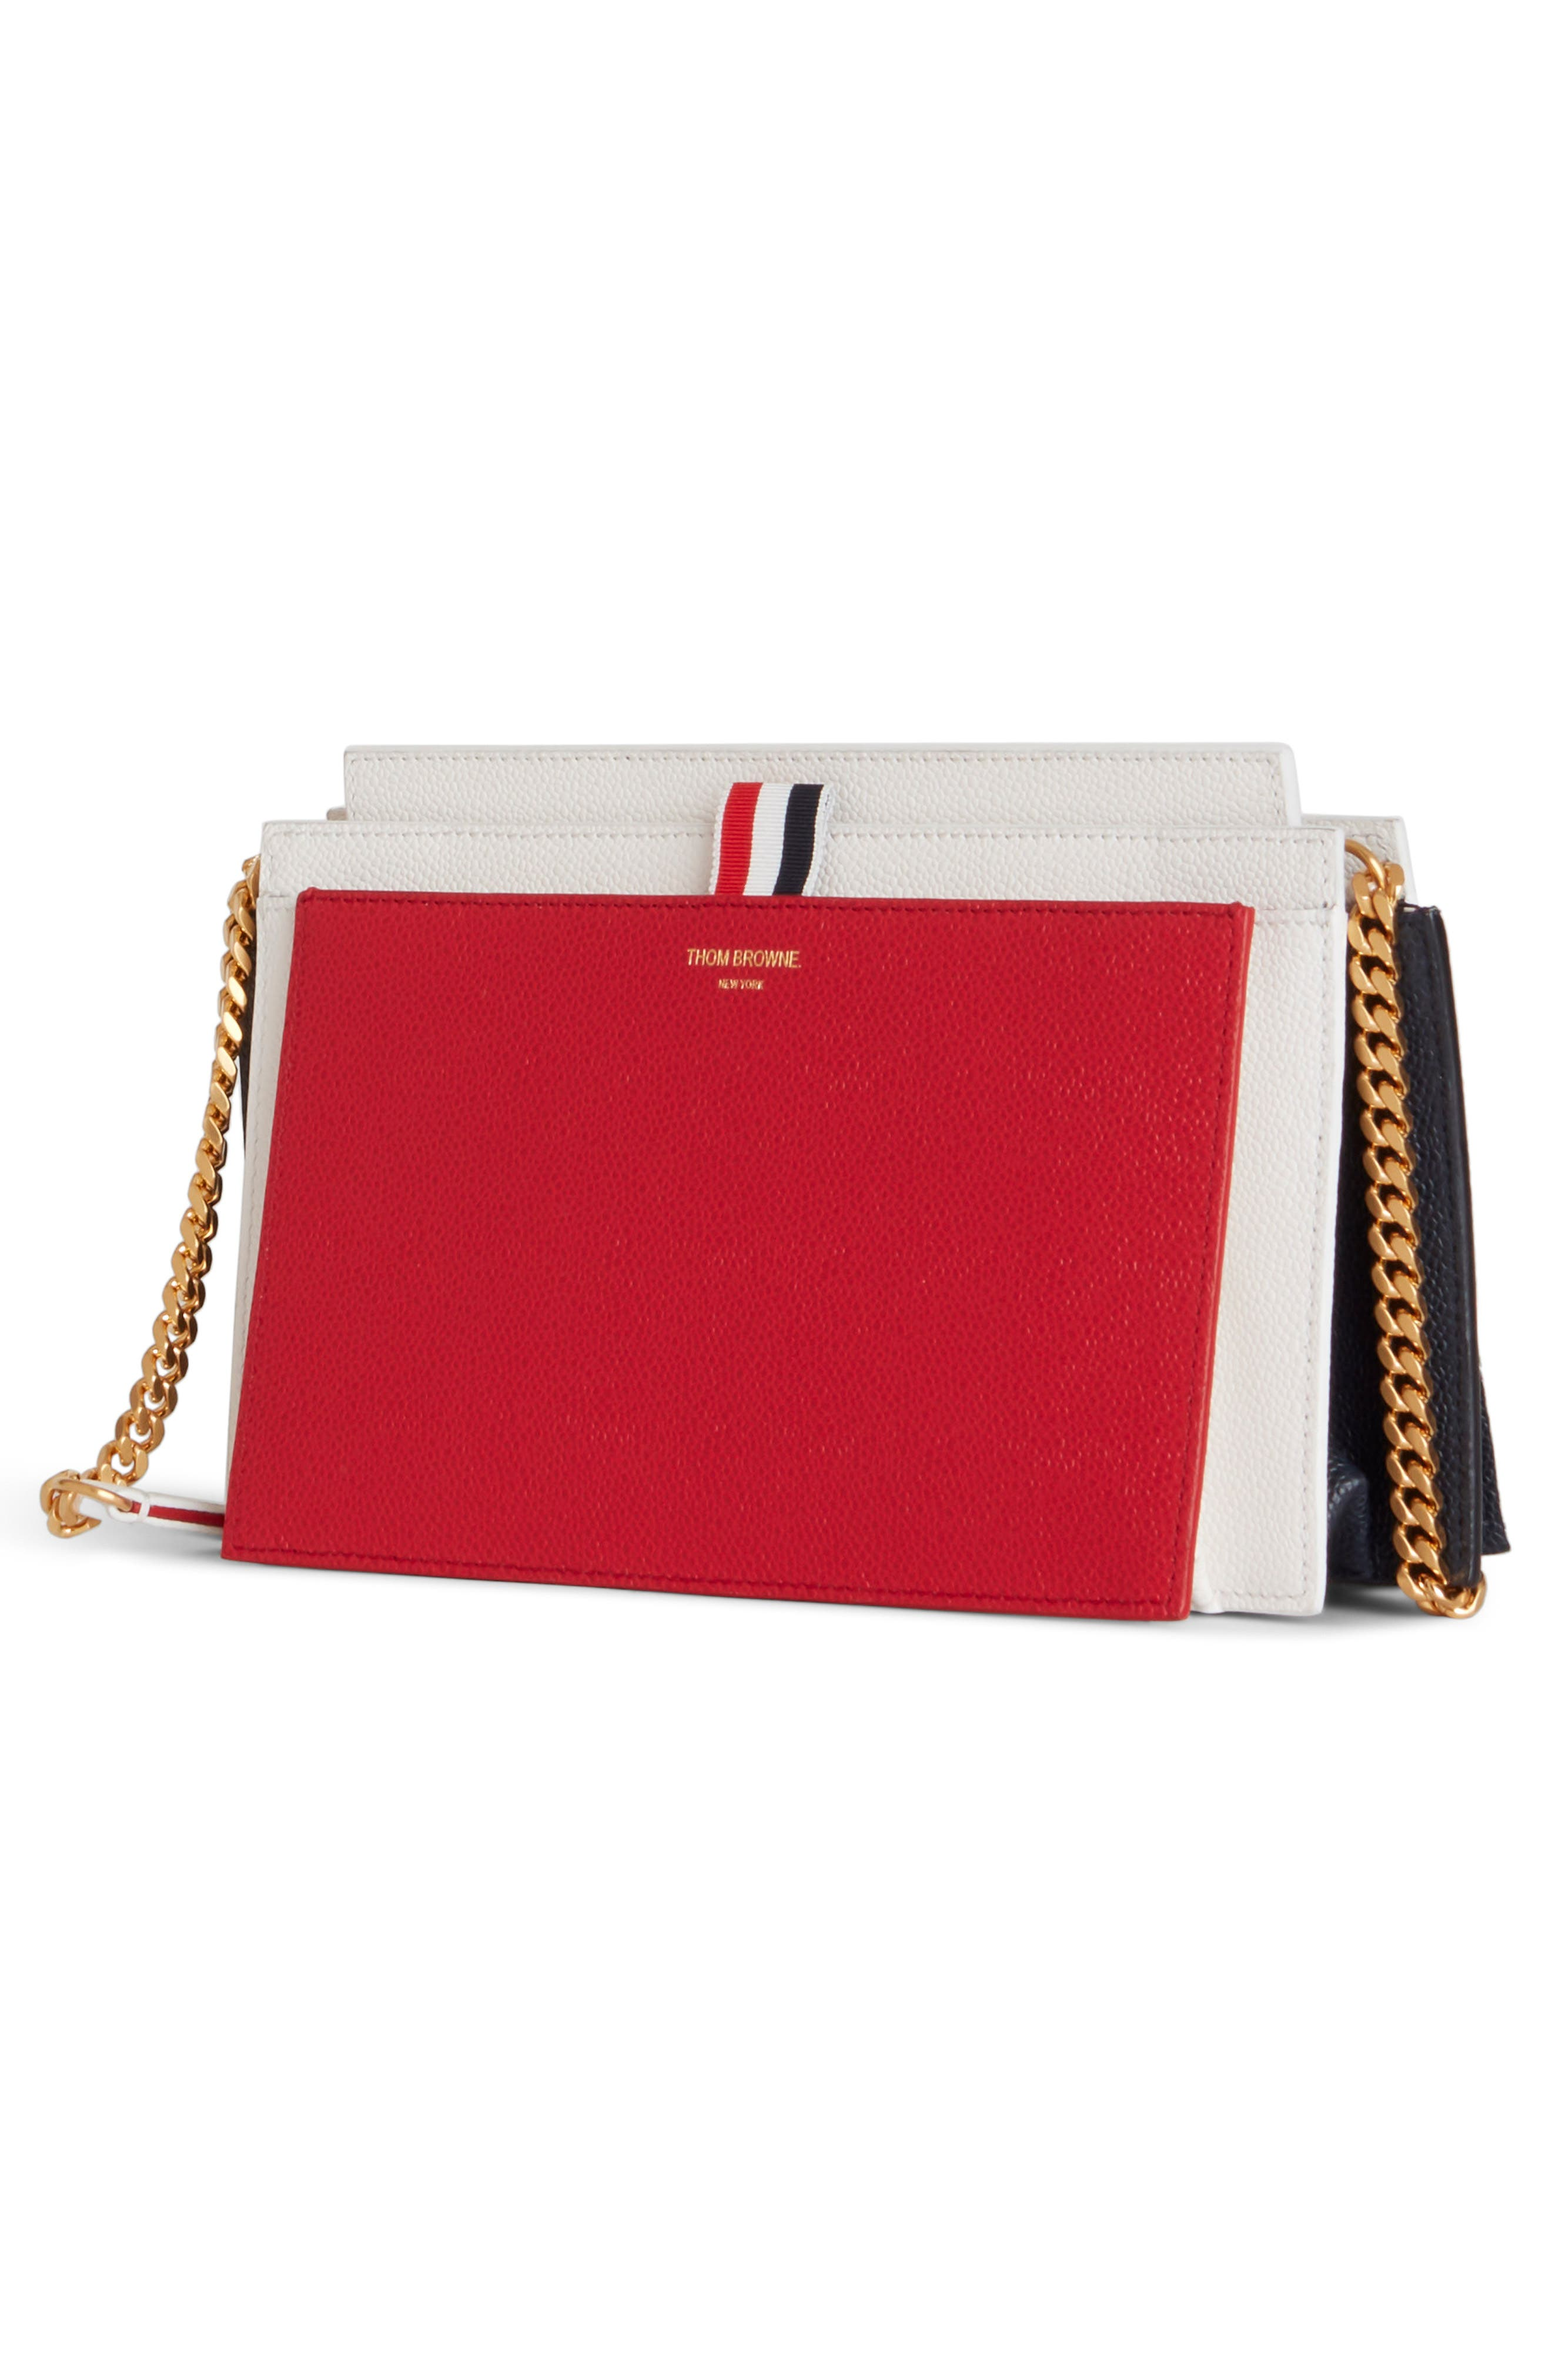 THOM BROWNE, Colorblock Leather Accordion Clutch, Alternate thumbnail 2, color, RED/ WHITE/ BLACK